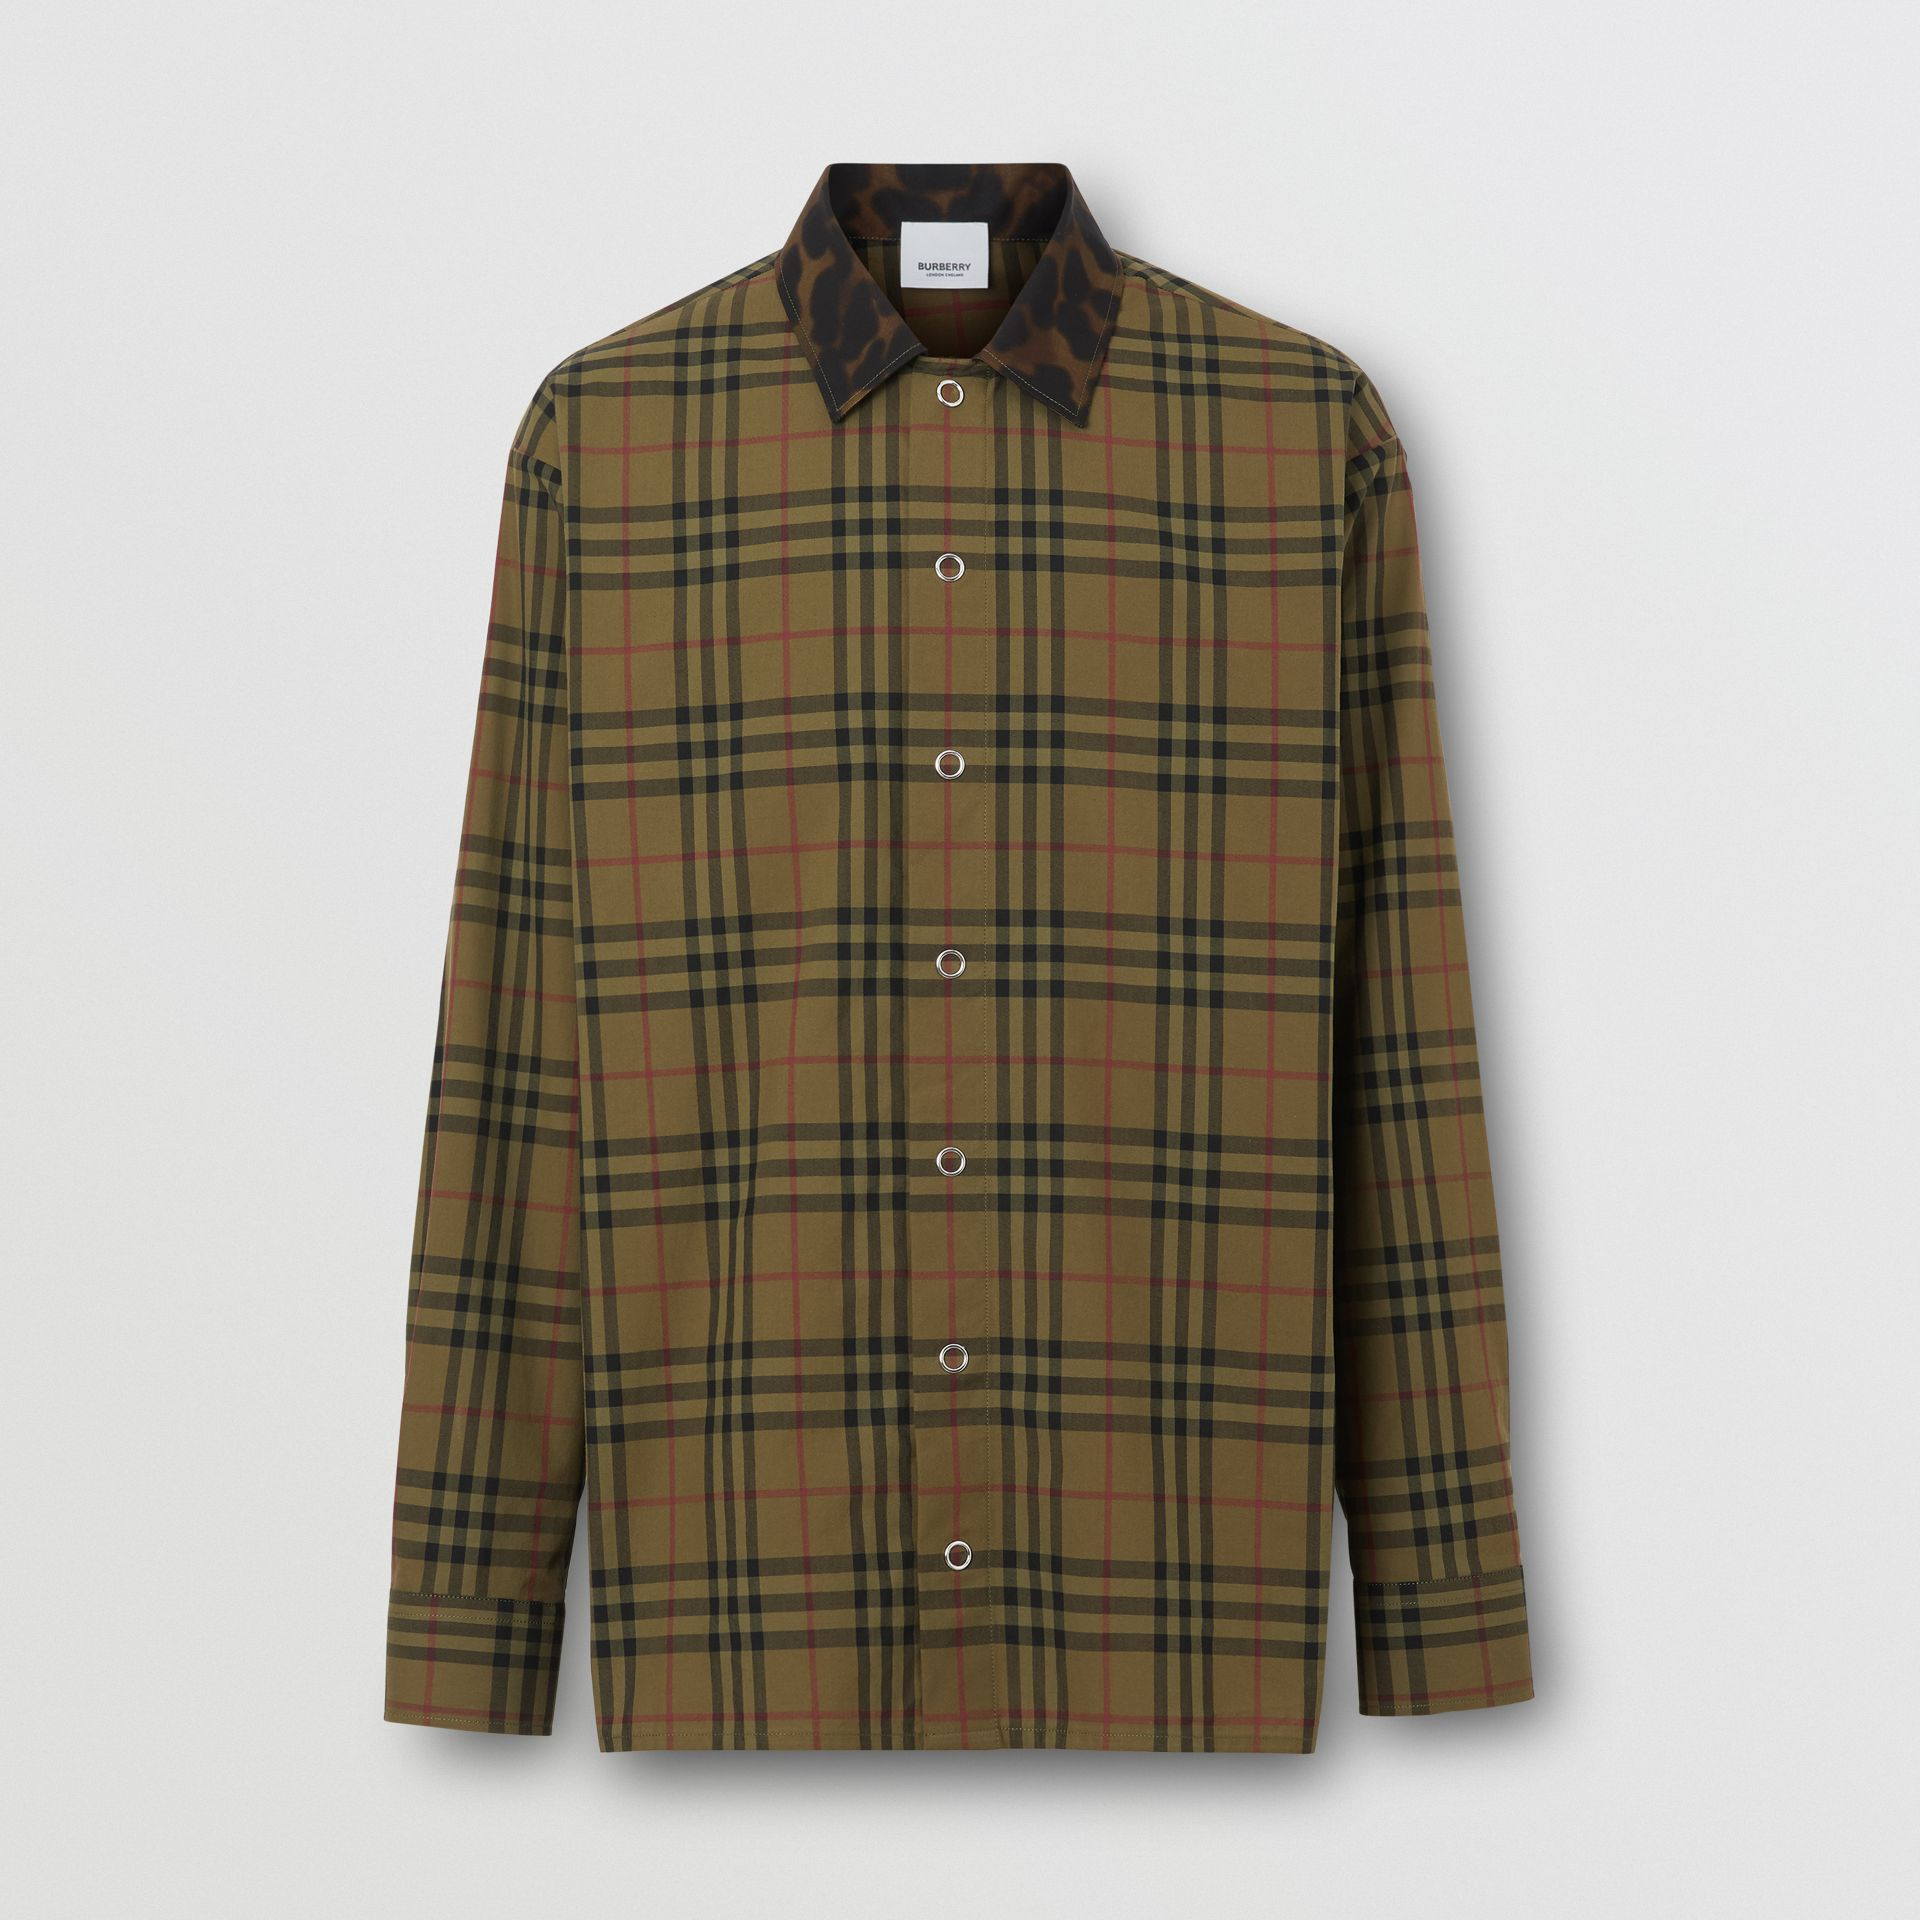 Contrast Collar Vintage Check Cotton Shirt in Army Green | Burberry United States - gallery image 3